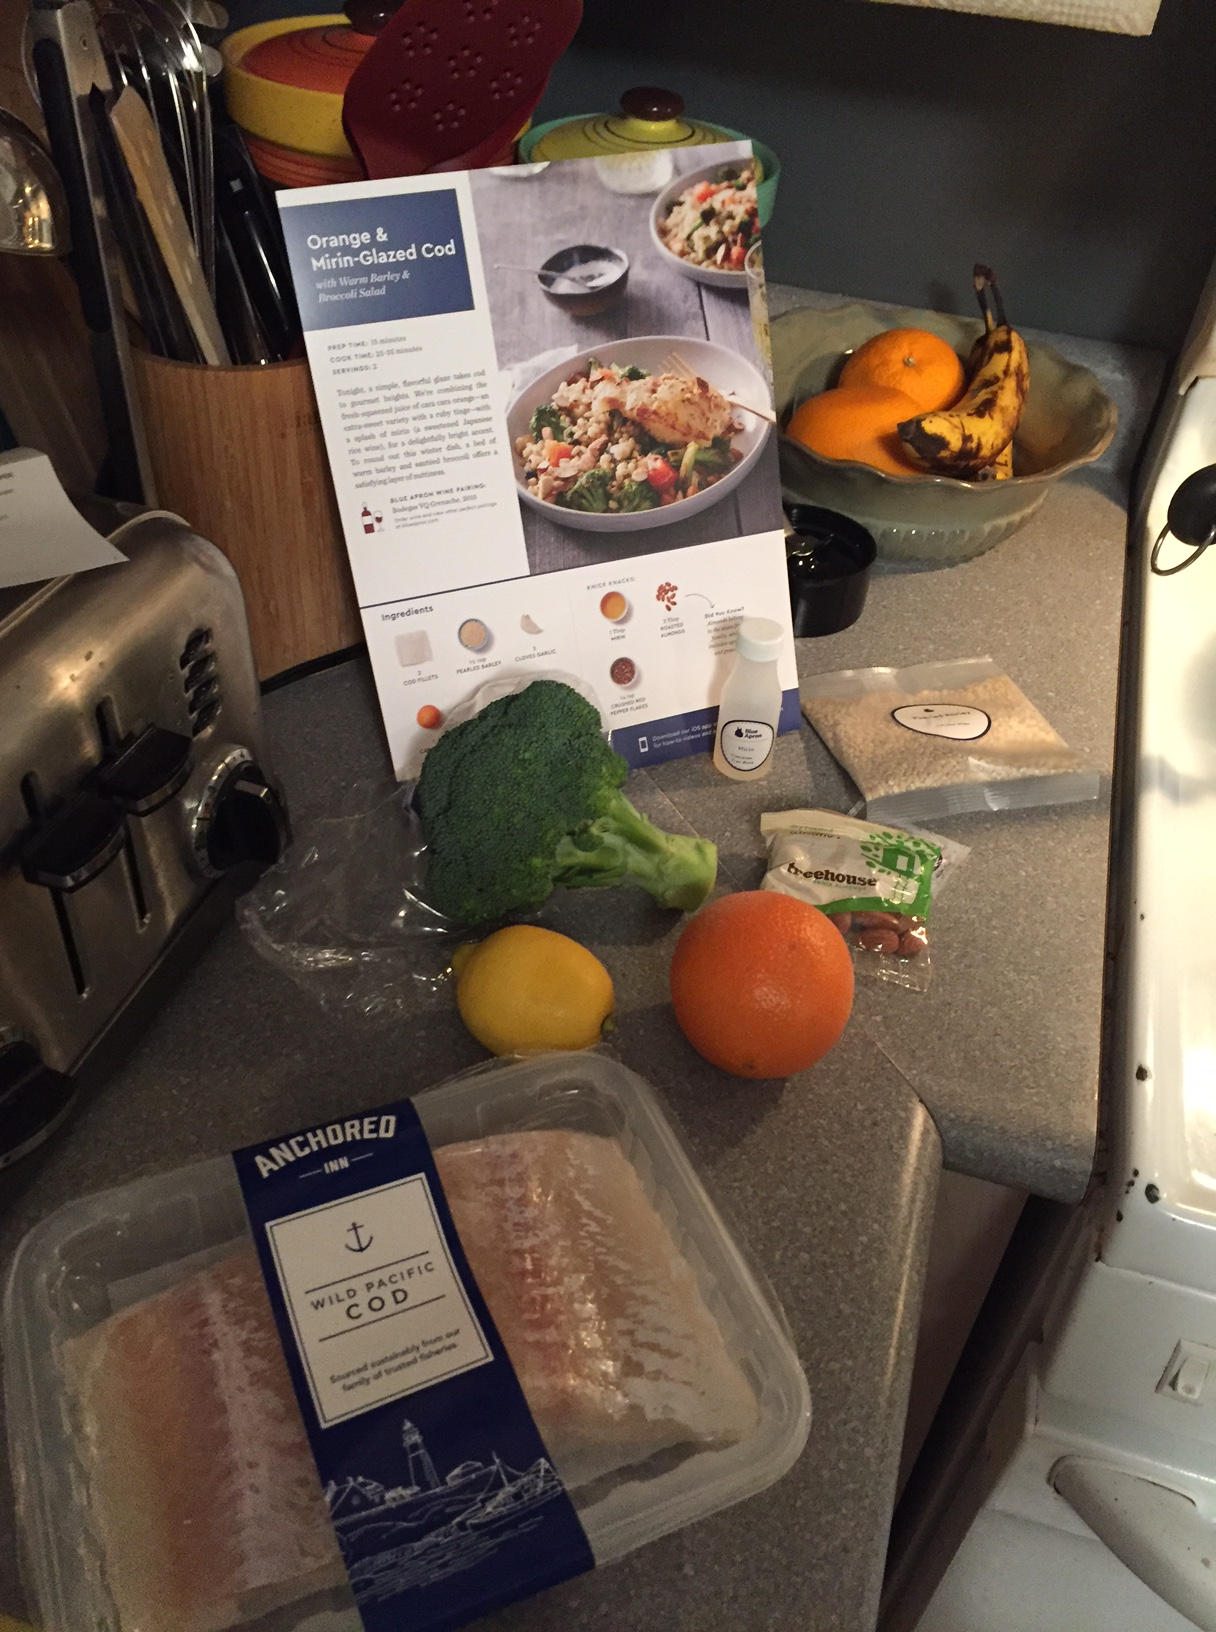 Blue Apron Meal 3 Orange and Mirin-Glazed Cod